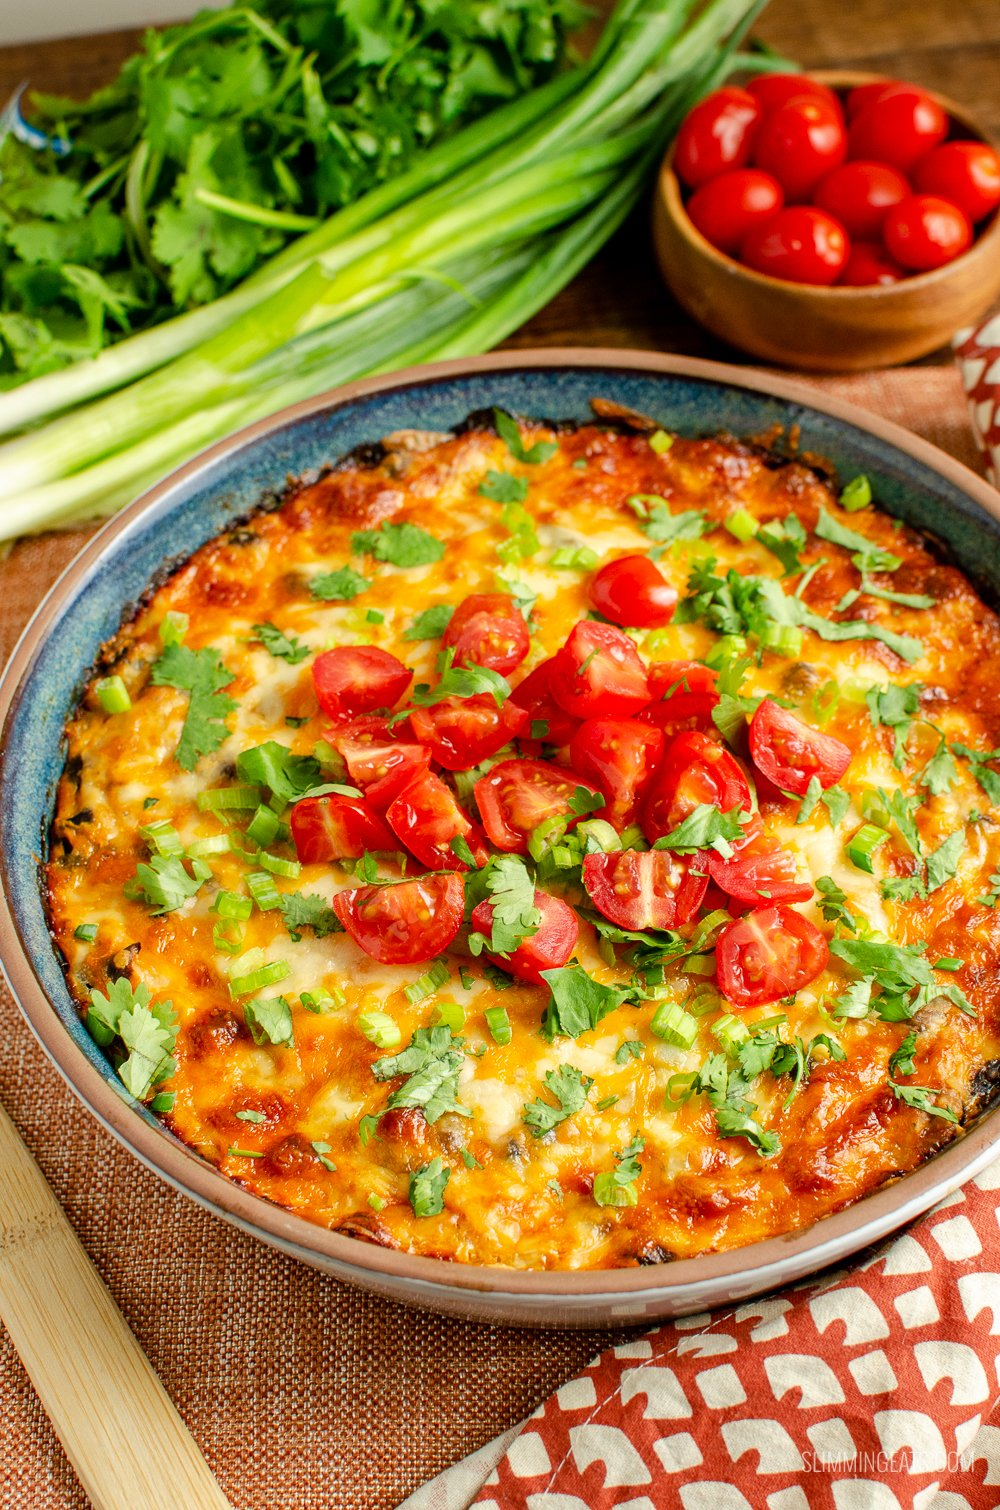 Mexican spaghetti squash bake in oven proof dish with green onions and tomatoes in background